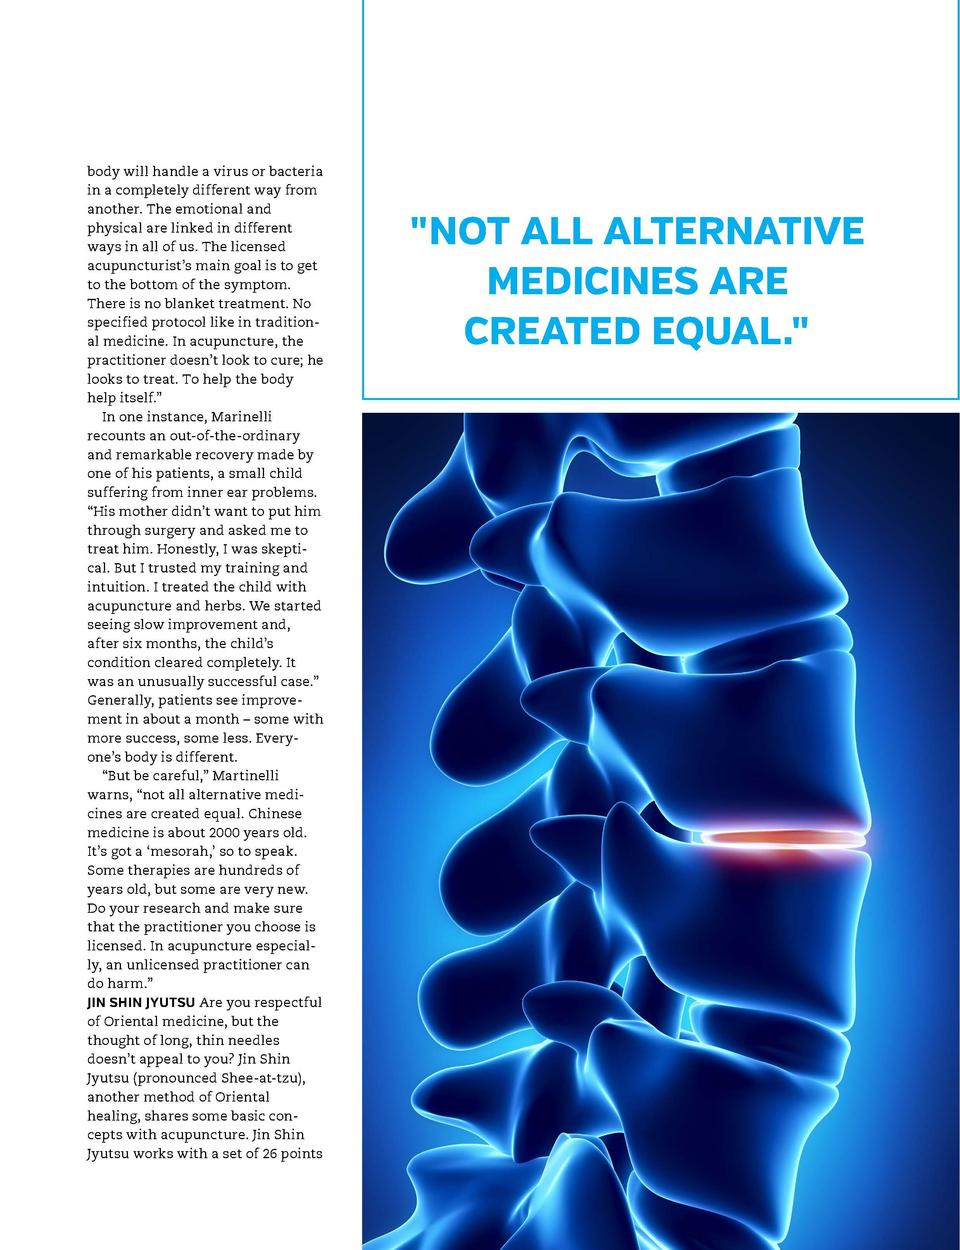 NOT ALL ALTERNATIVE MEDICINES ARE CREATED EQUAL.   CREDIT TO GO IN THERE  body will handle a virus or bacteria in a compl...